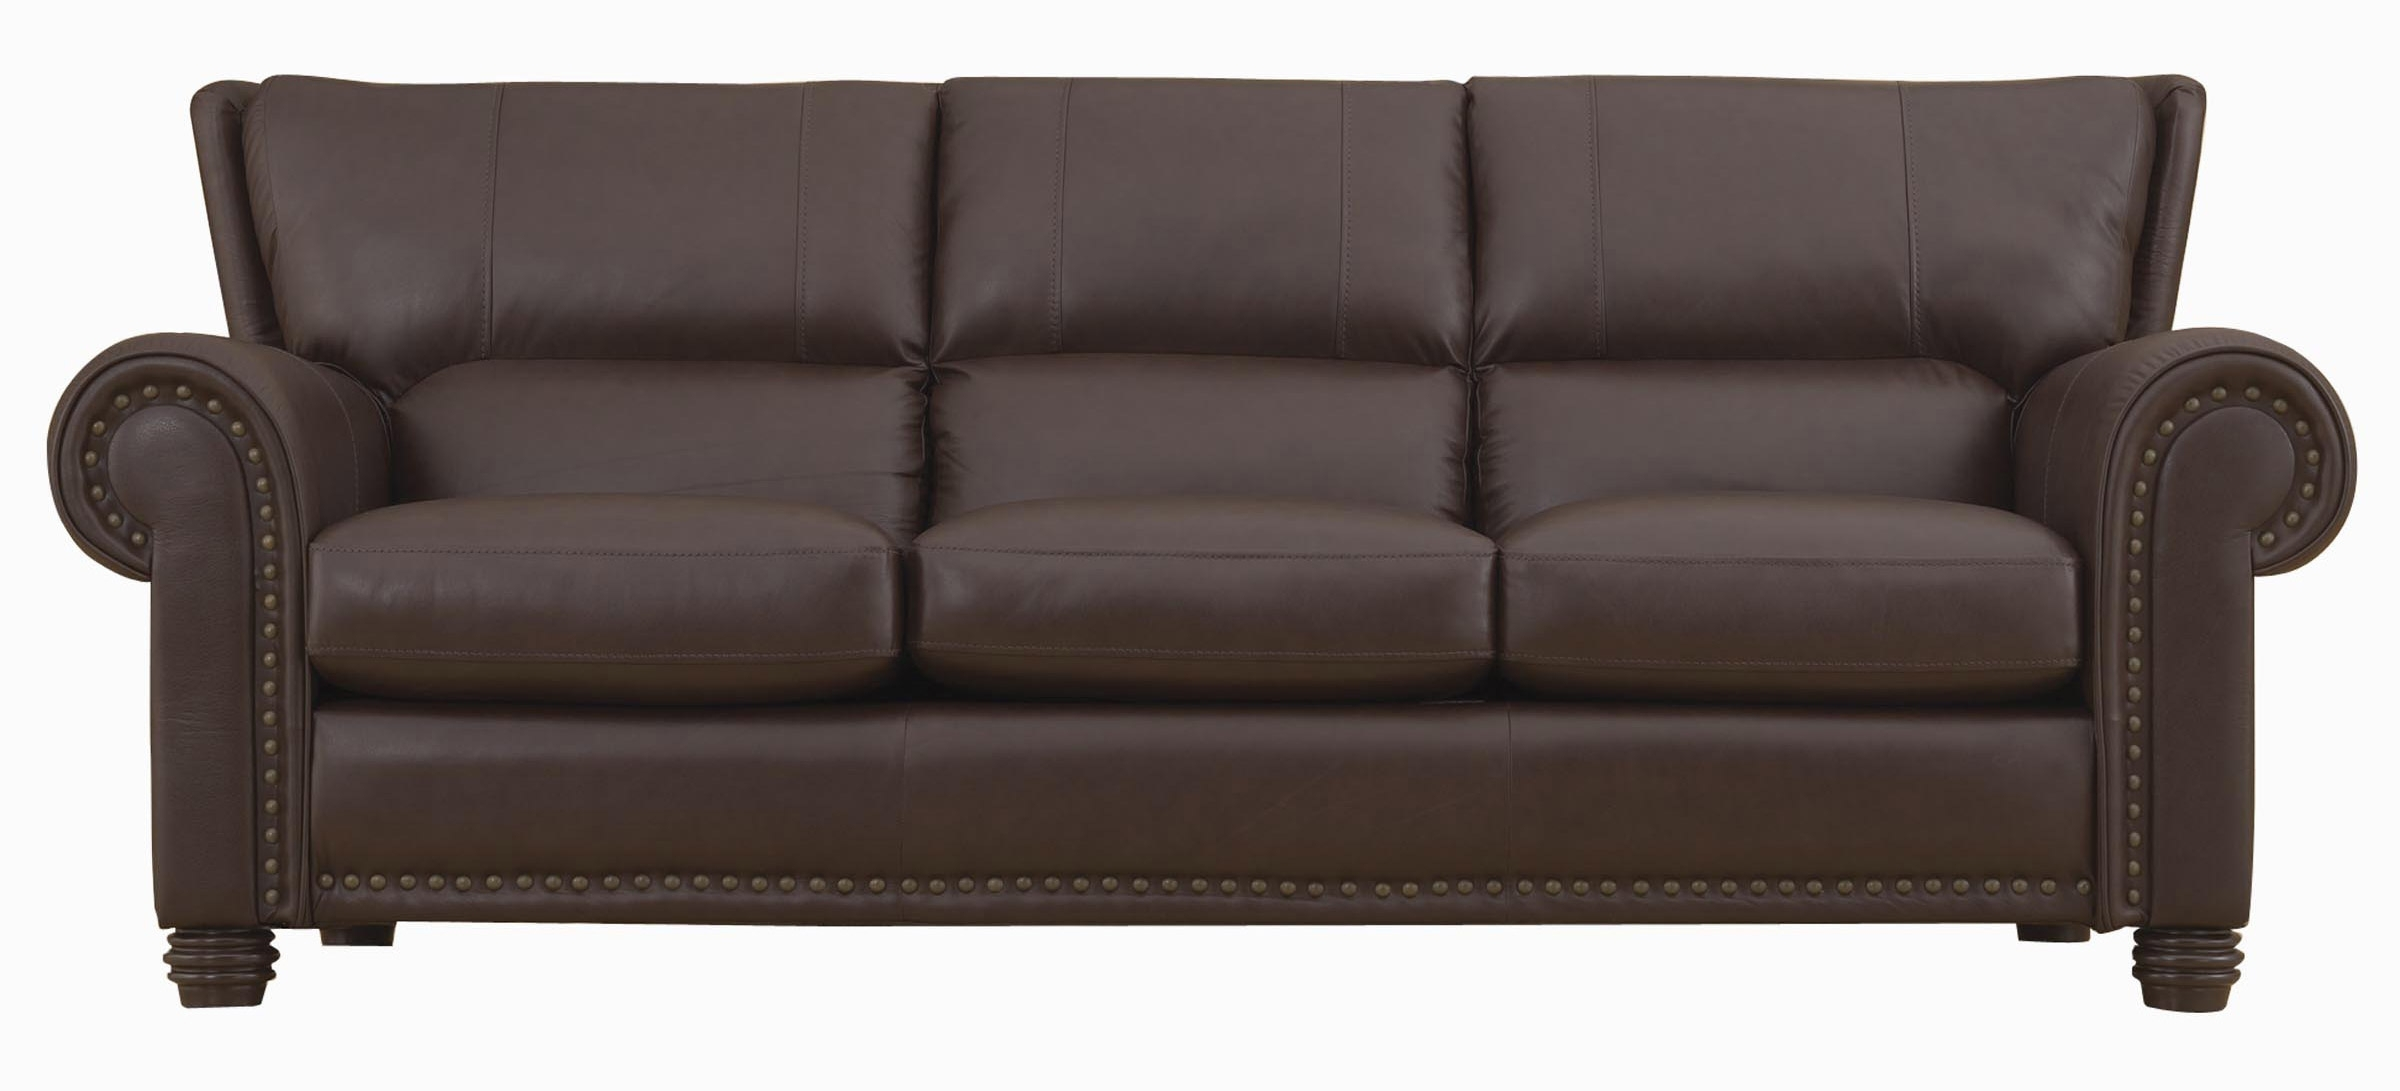 Sofa Windsor – Traditional Style – Jaymar Collection With Favorite Windsor Sofas (View 8 of 15)